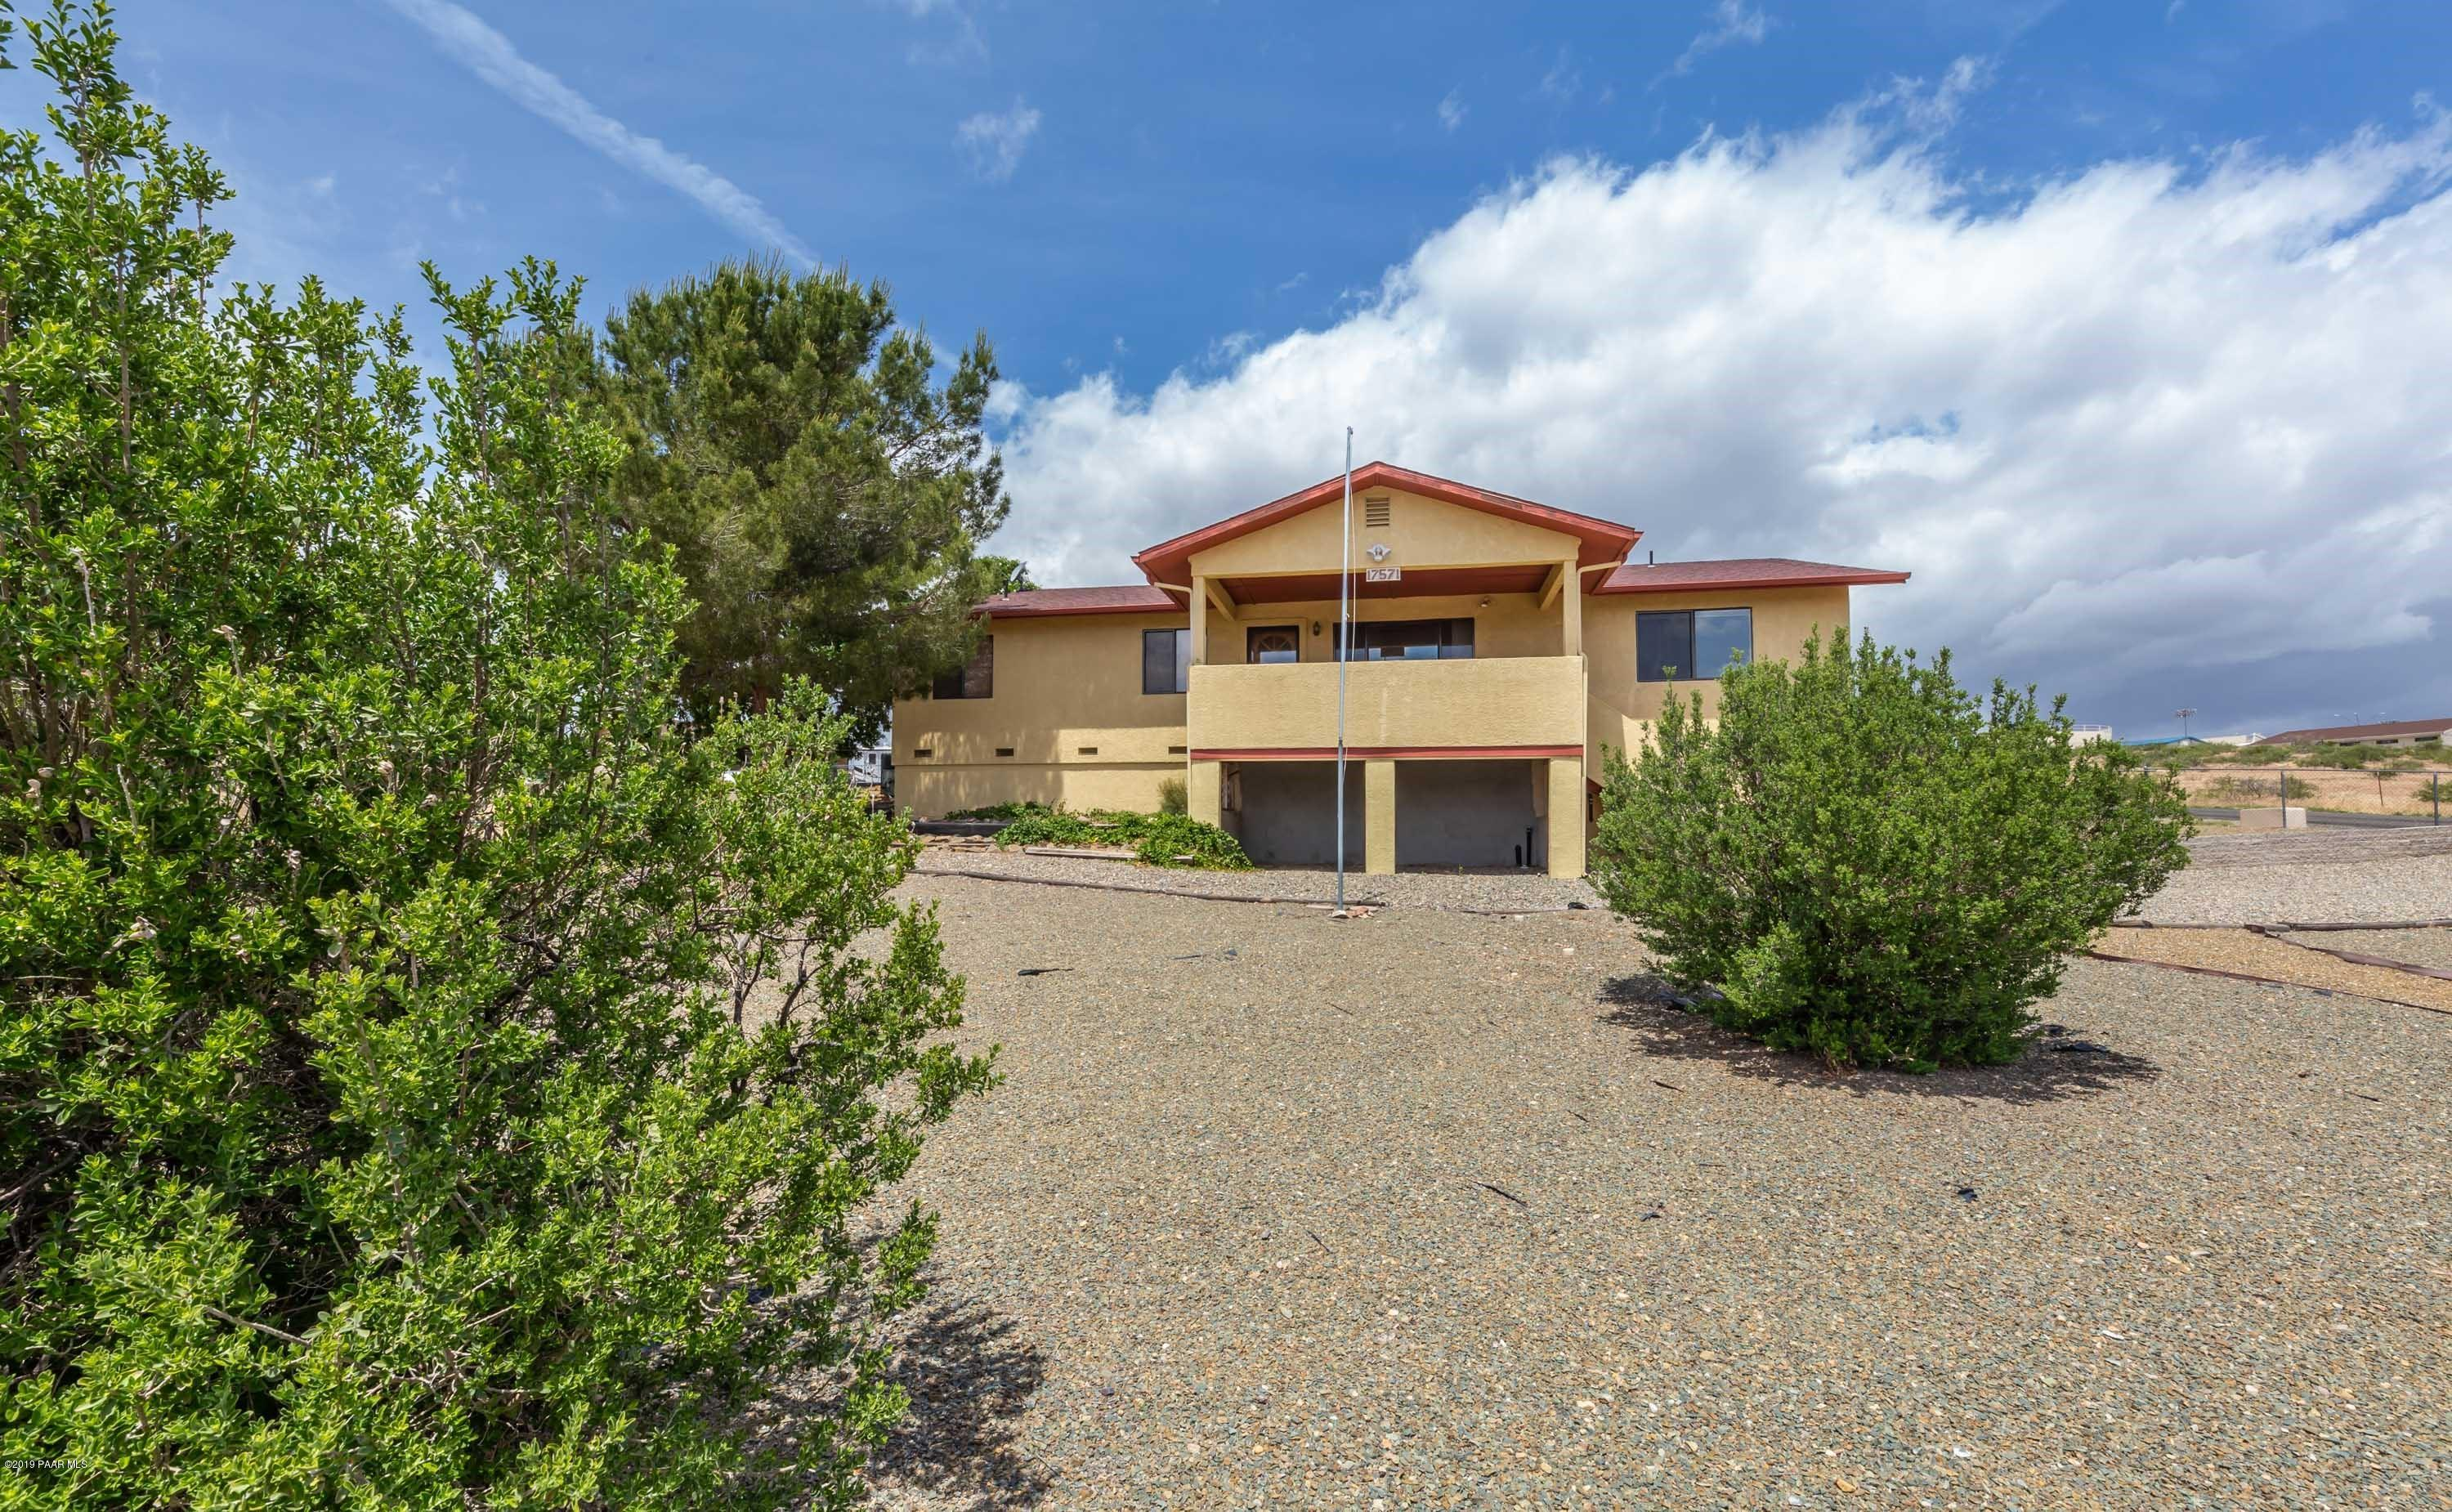 17571 E Hummingbird Lane, Mayer Az 86333